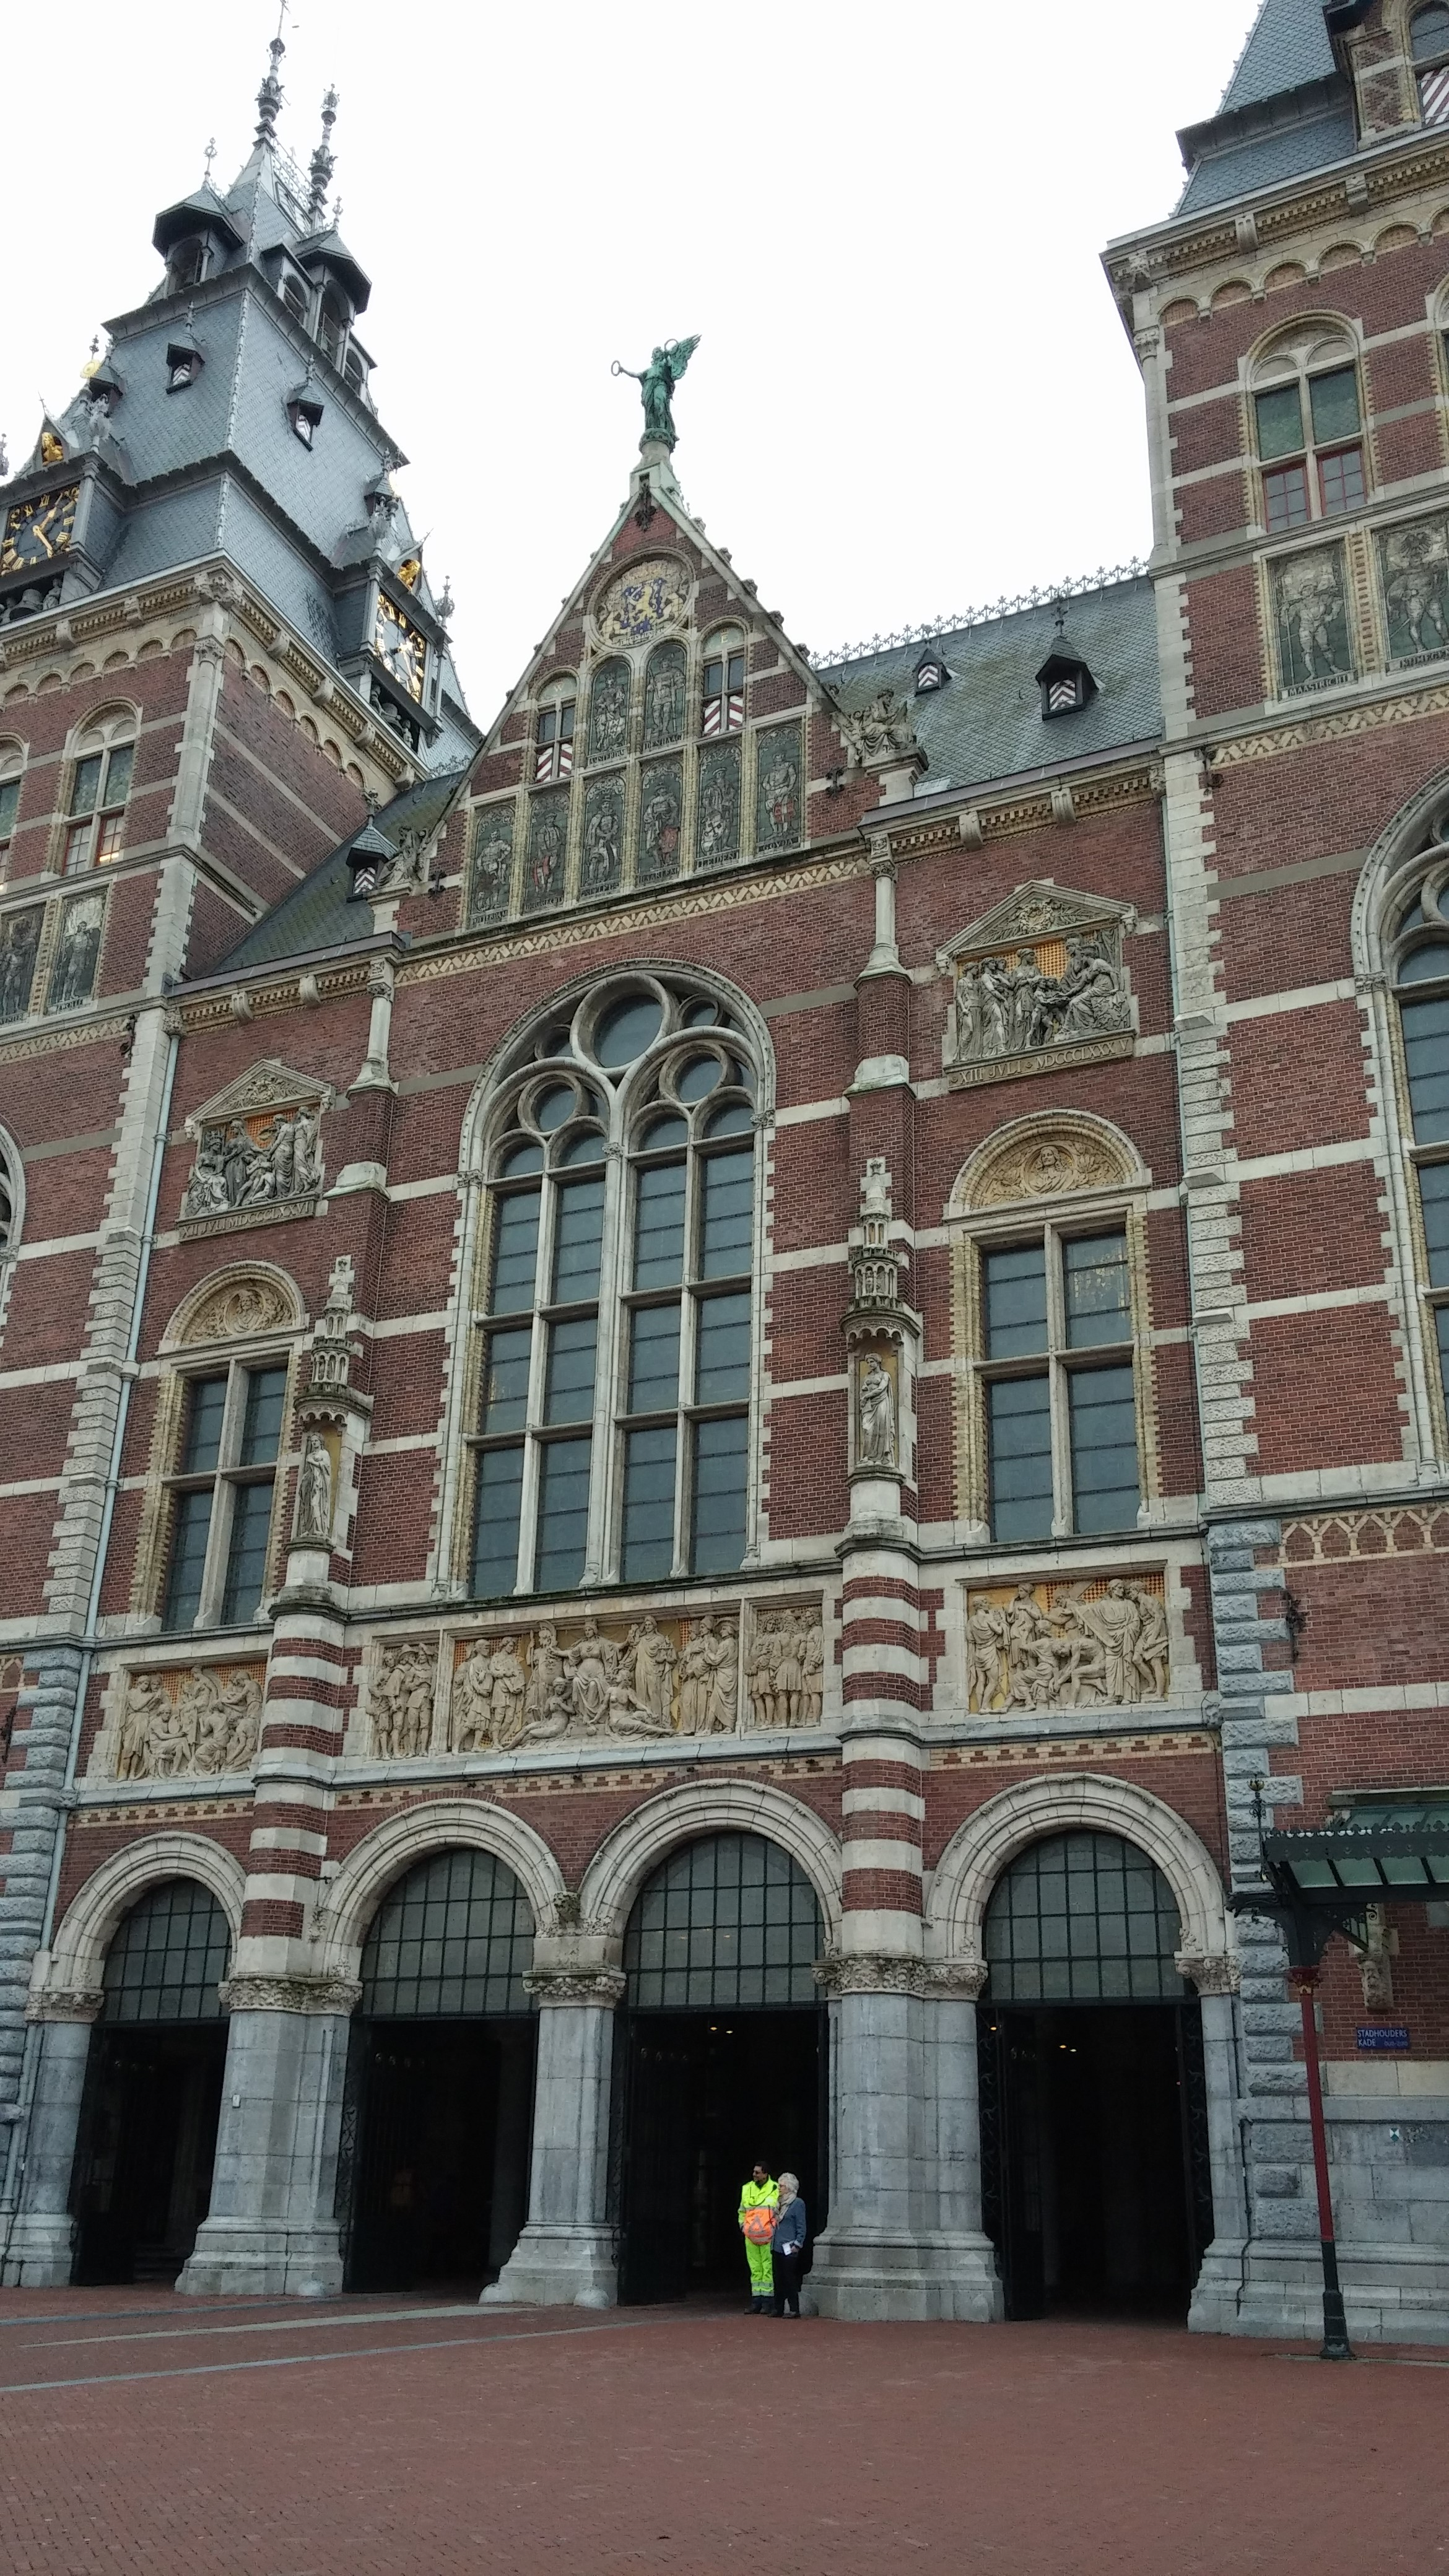 The outside of the Rijks Museum